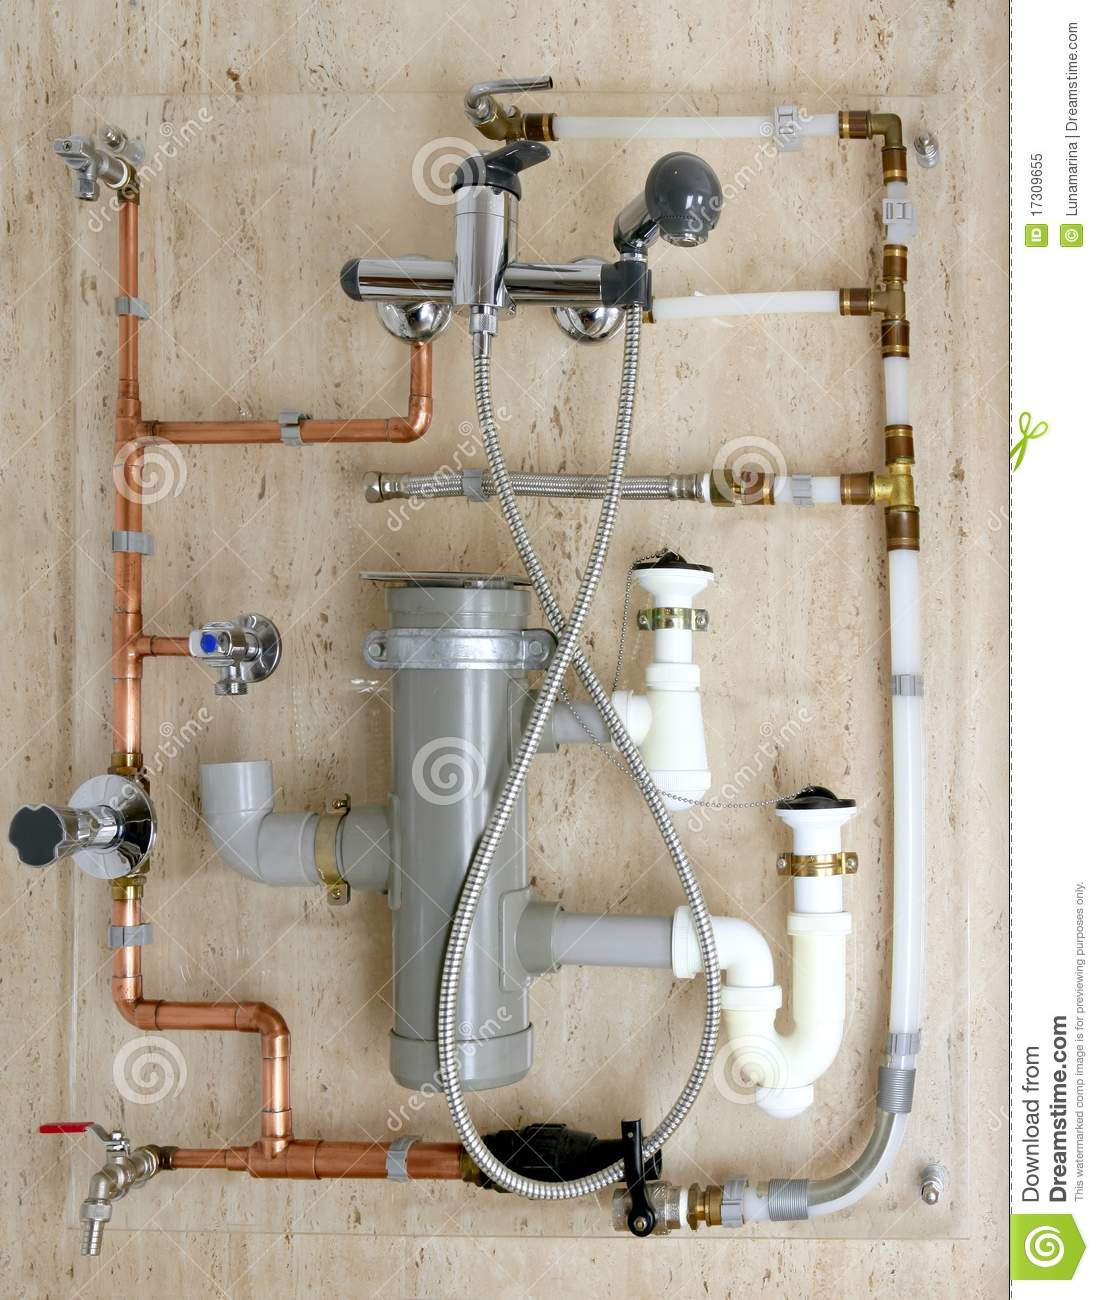 Copper plumbing installation and polyethylene pvc royalty for Plumbing copper to plastic